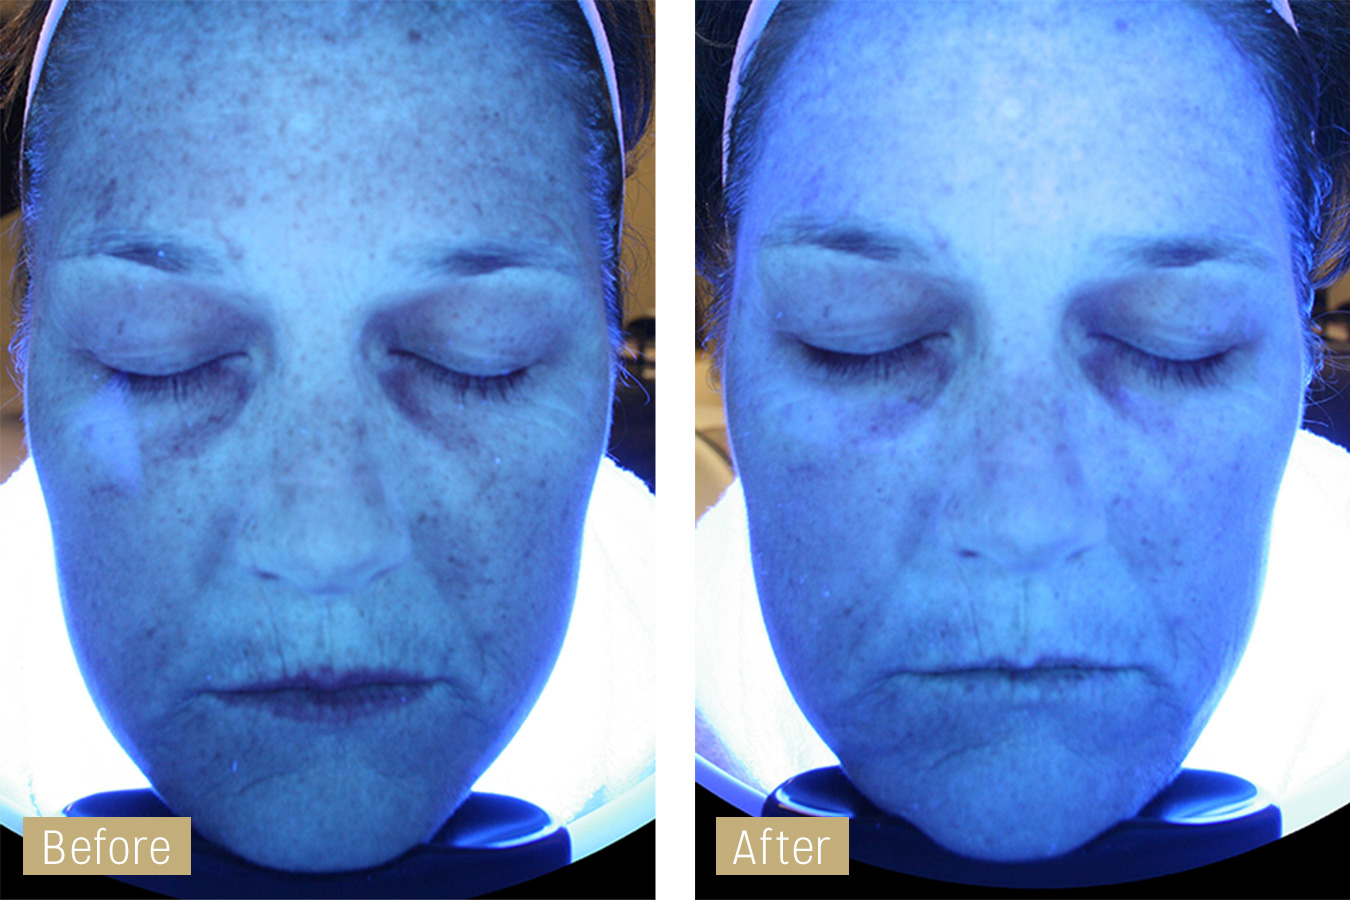 hydrafacial scan image - before and after